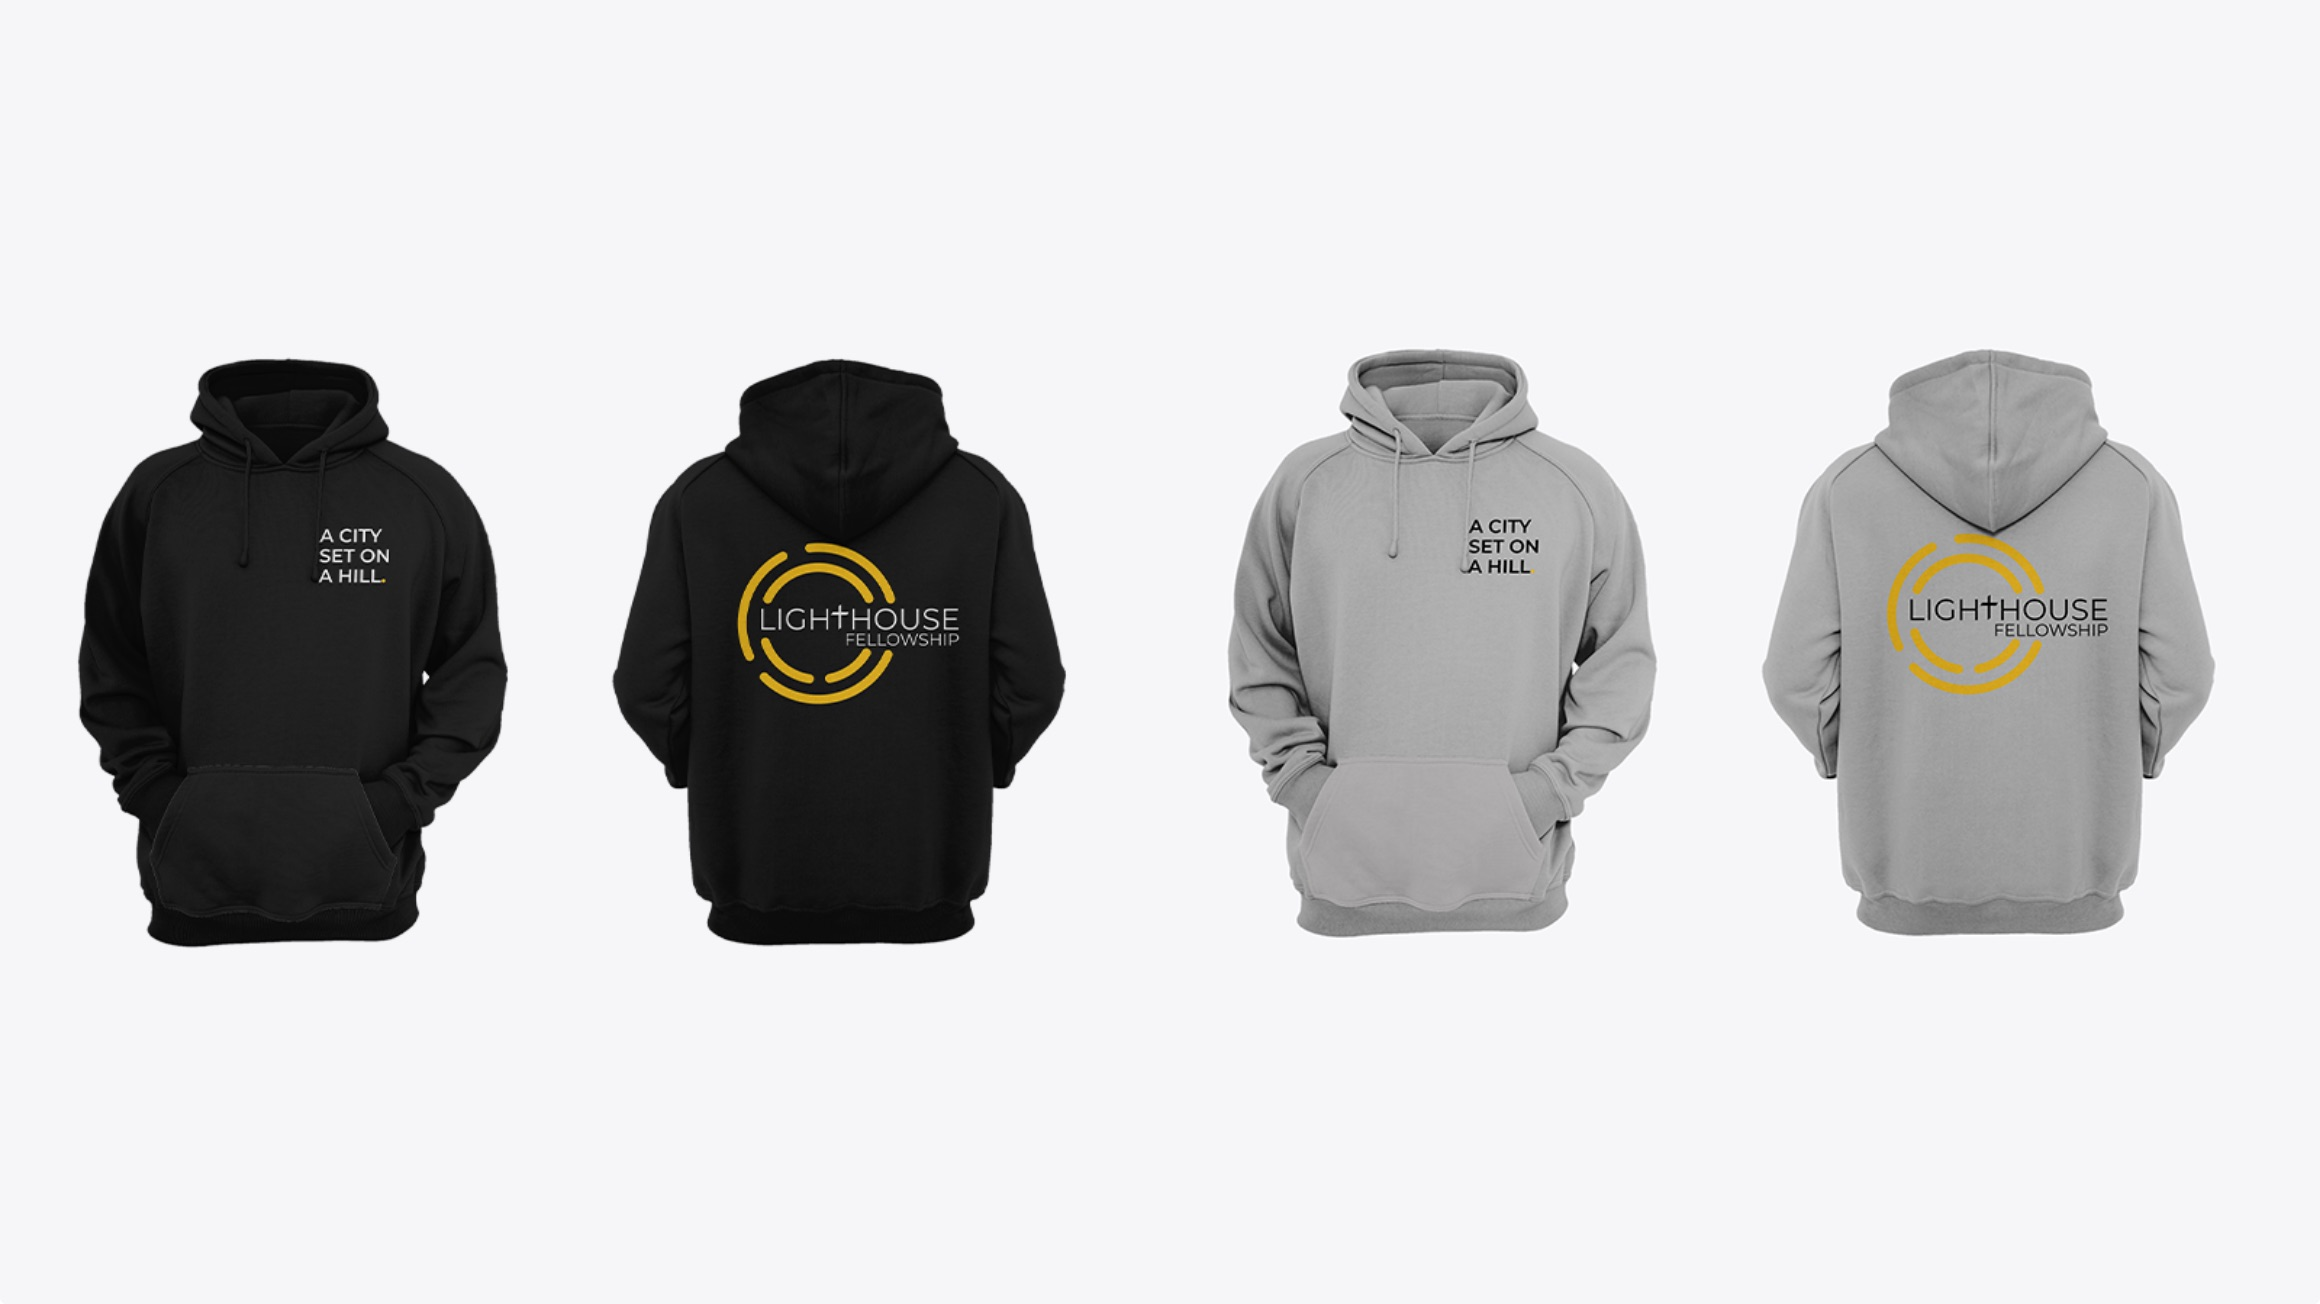 Design of Lighthouse Fellowship's black and grey hoodies